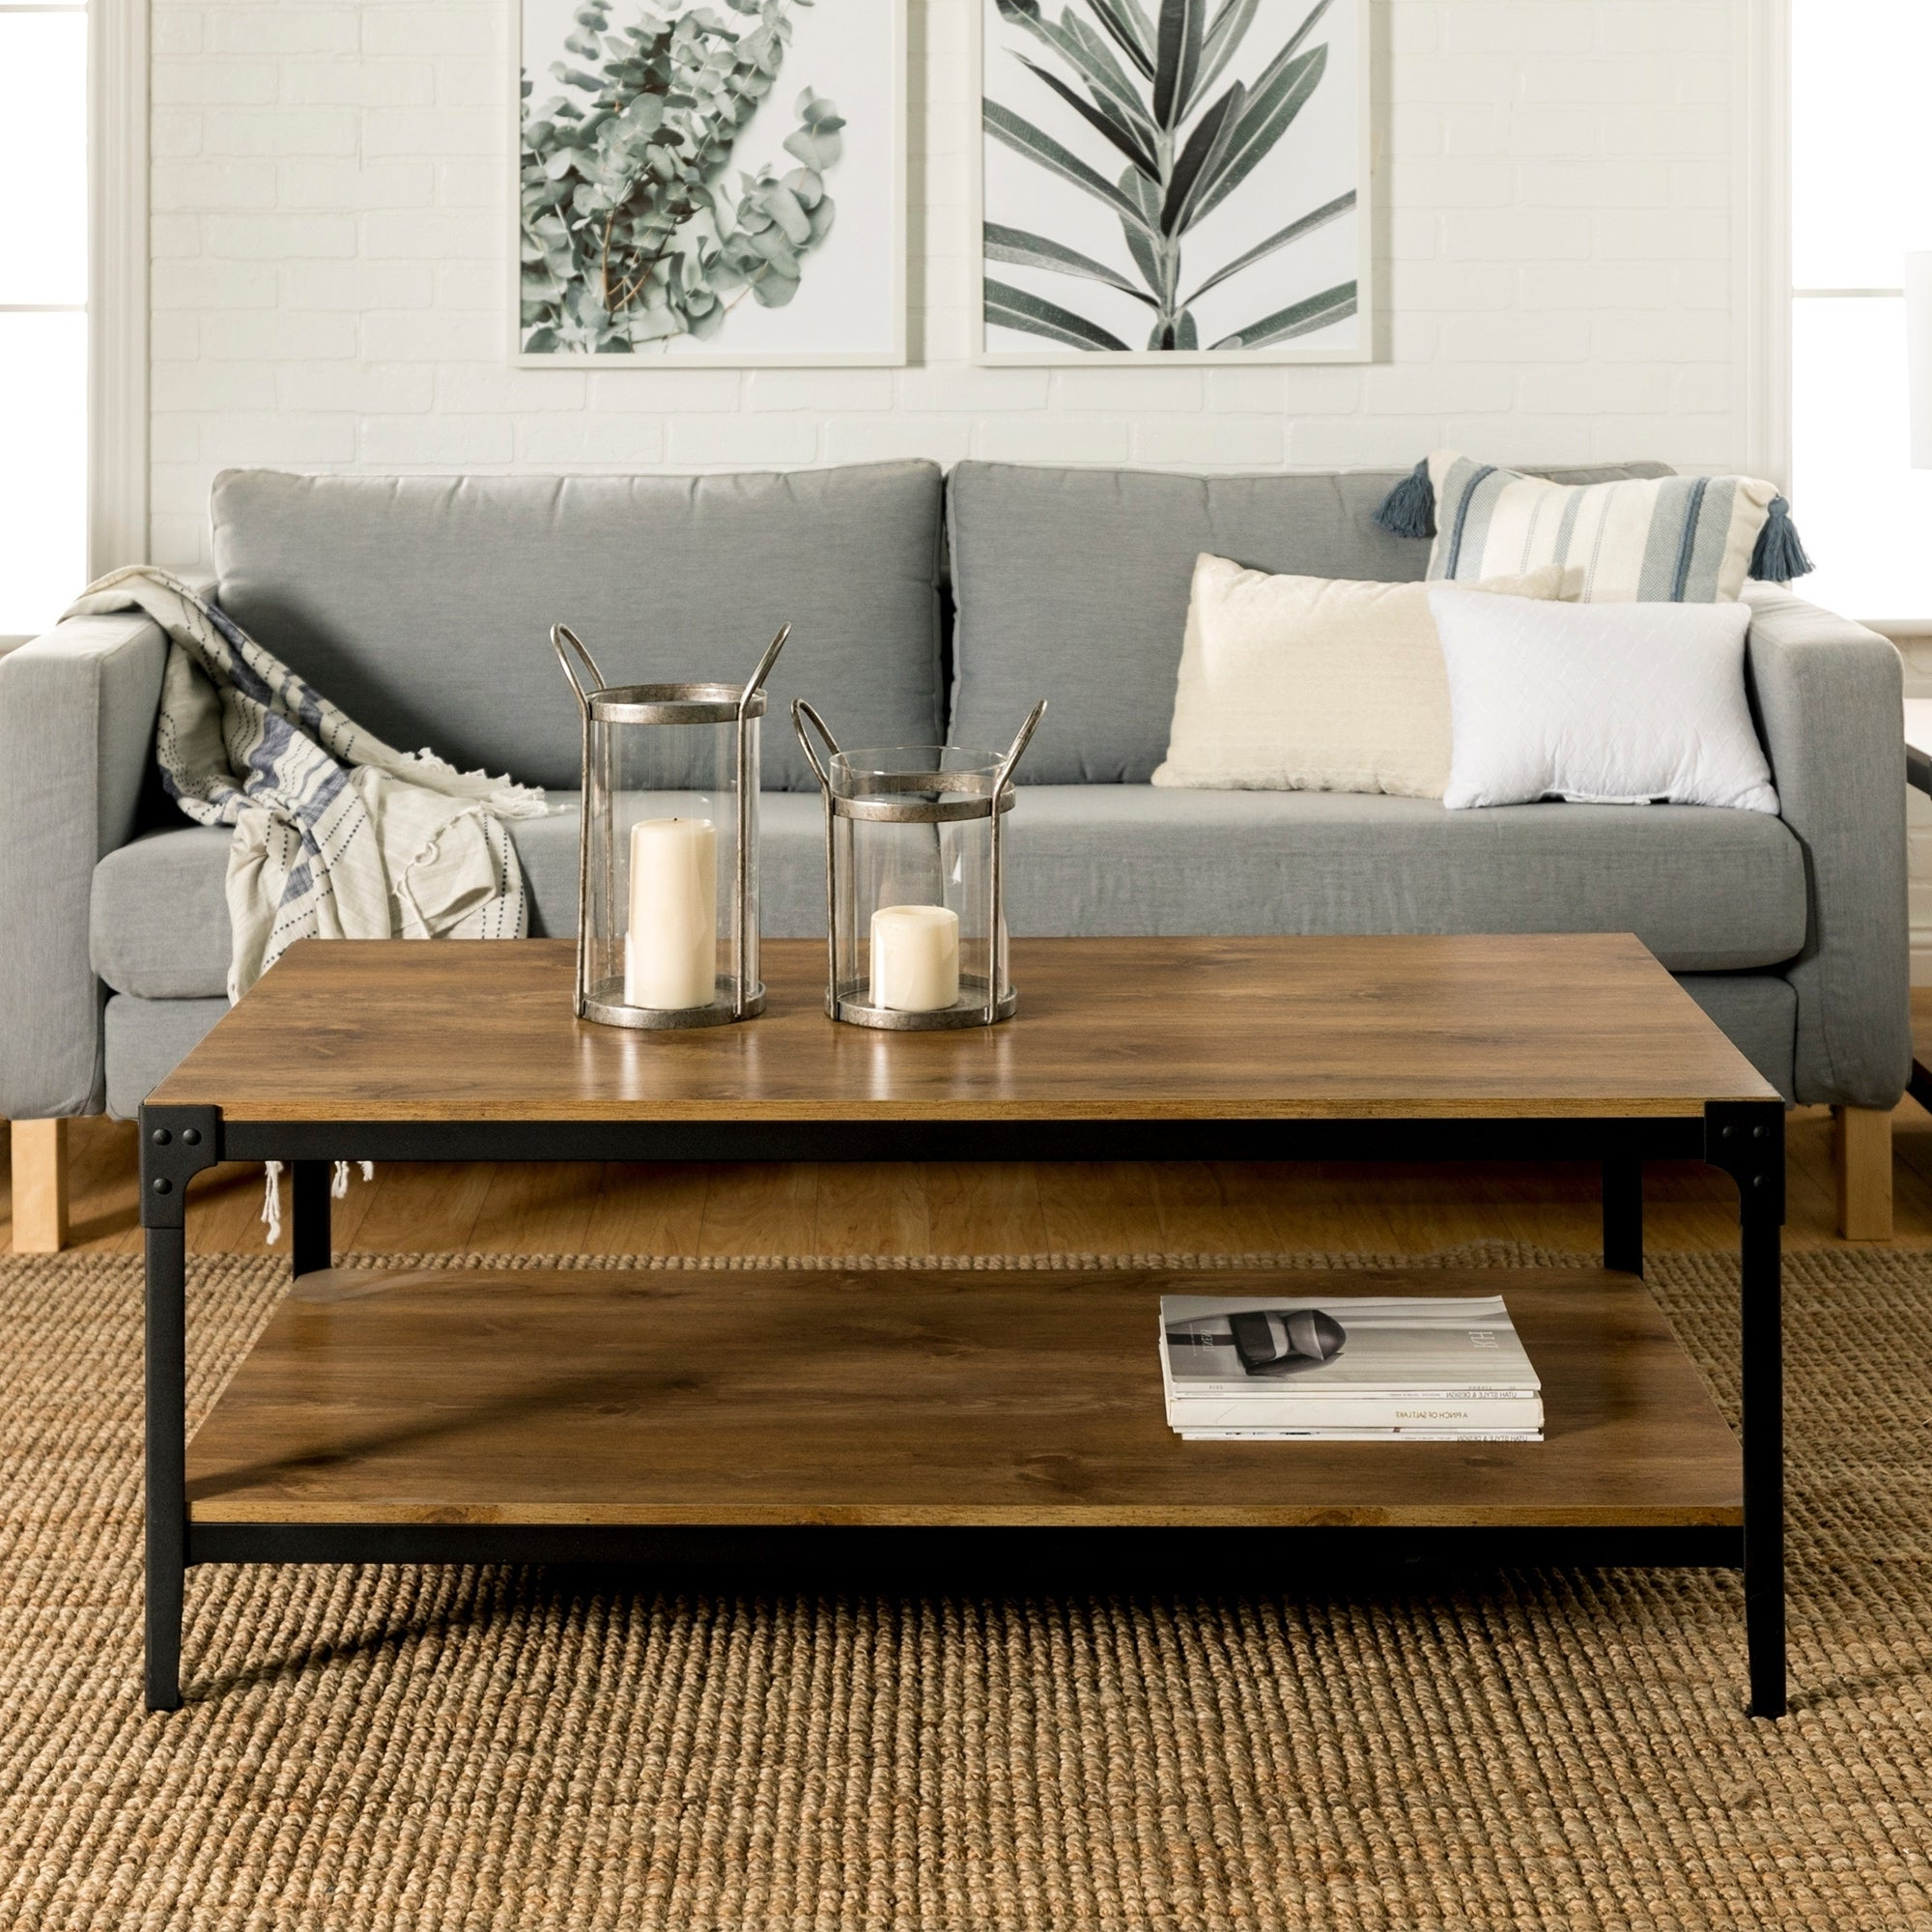 Most Current Carbon Loft Witten Angle Iron And Driftwood Coffee Tables Throughout Carbon Loft Witten Angle Iron And Barnwood Coffee Table – 48 X 24 X 18H (View 11 of 20)